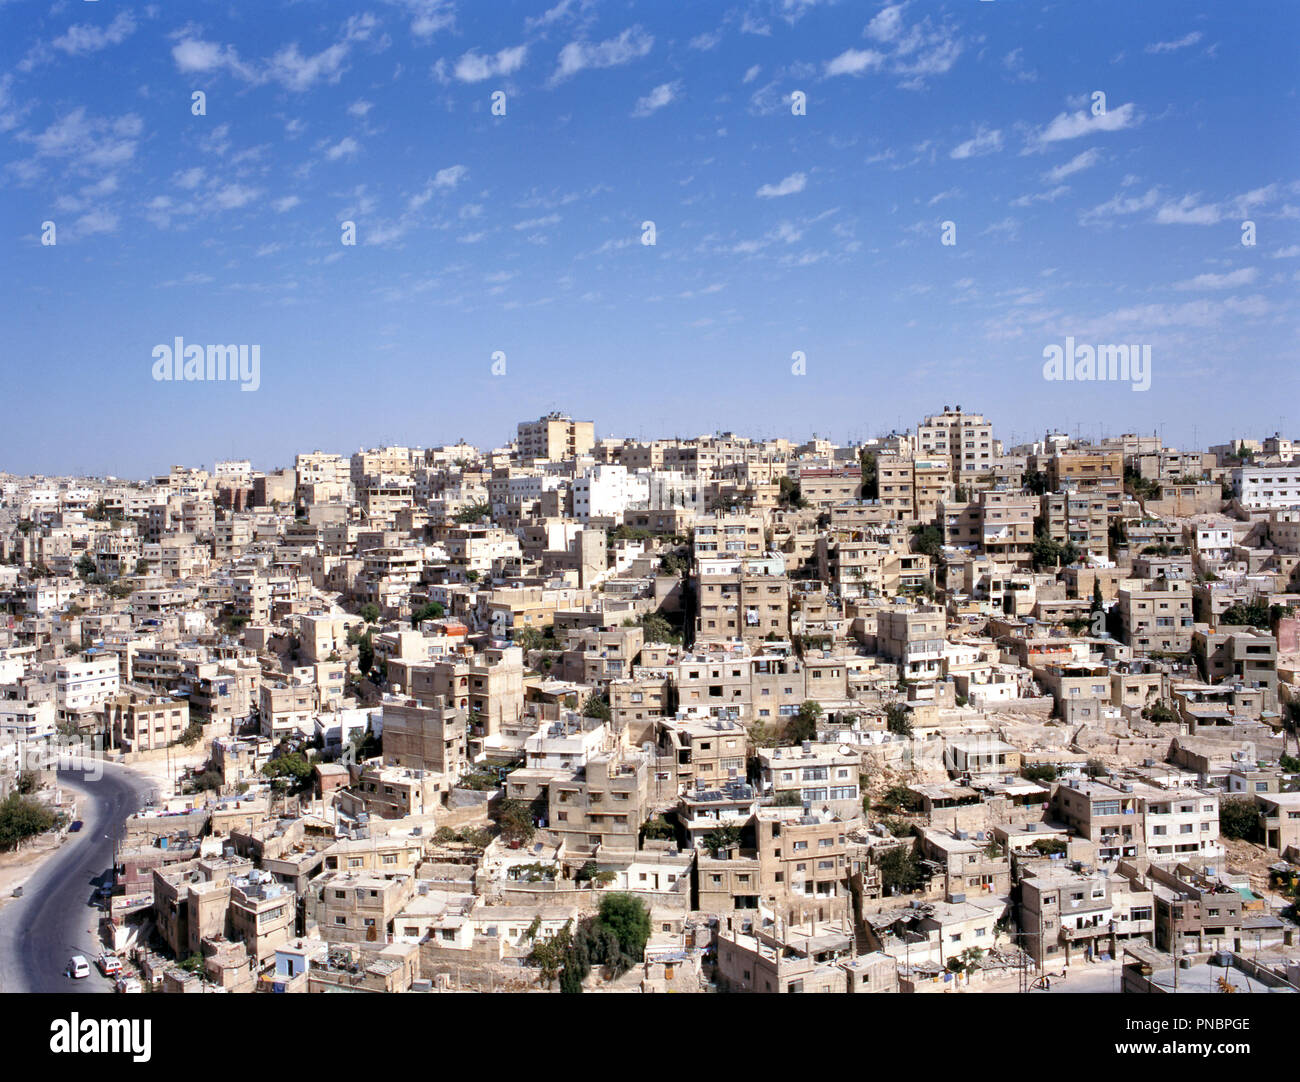 Birdview of Amman the capital of Jordan in the Middle East Stock Photo